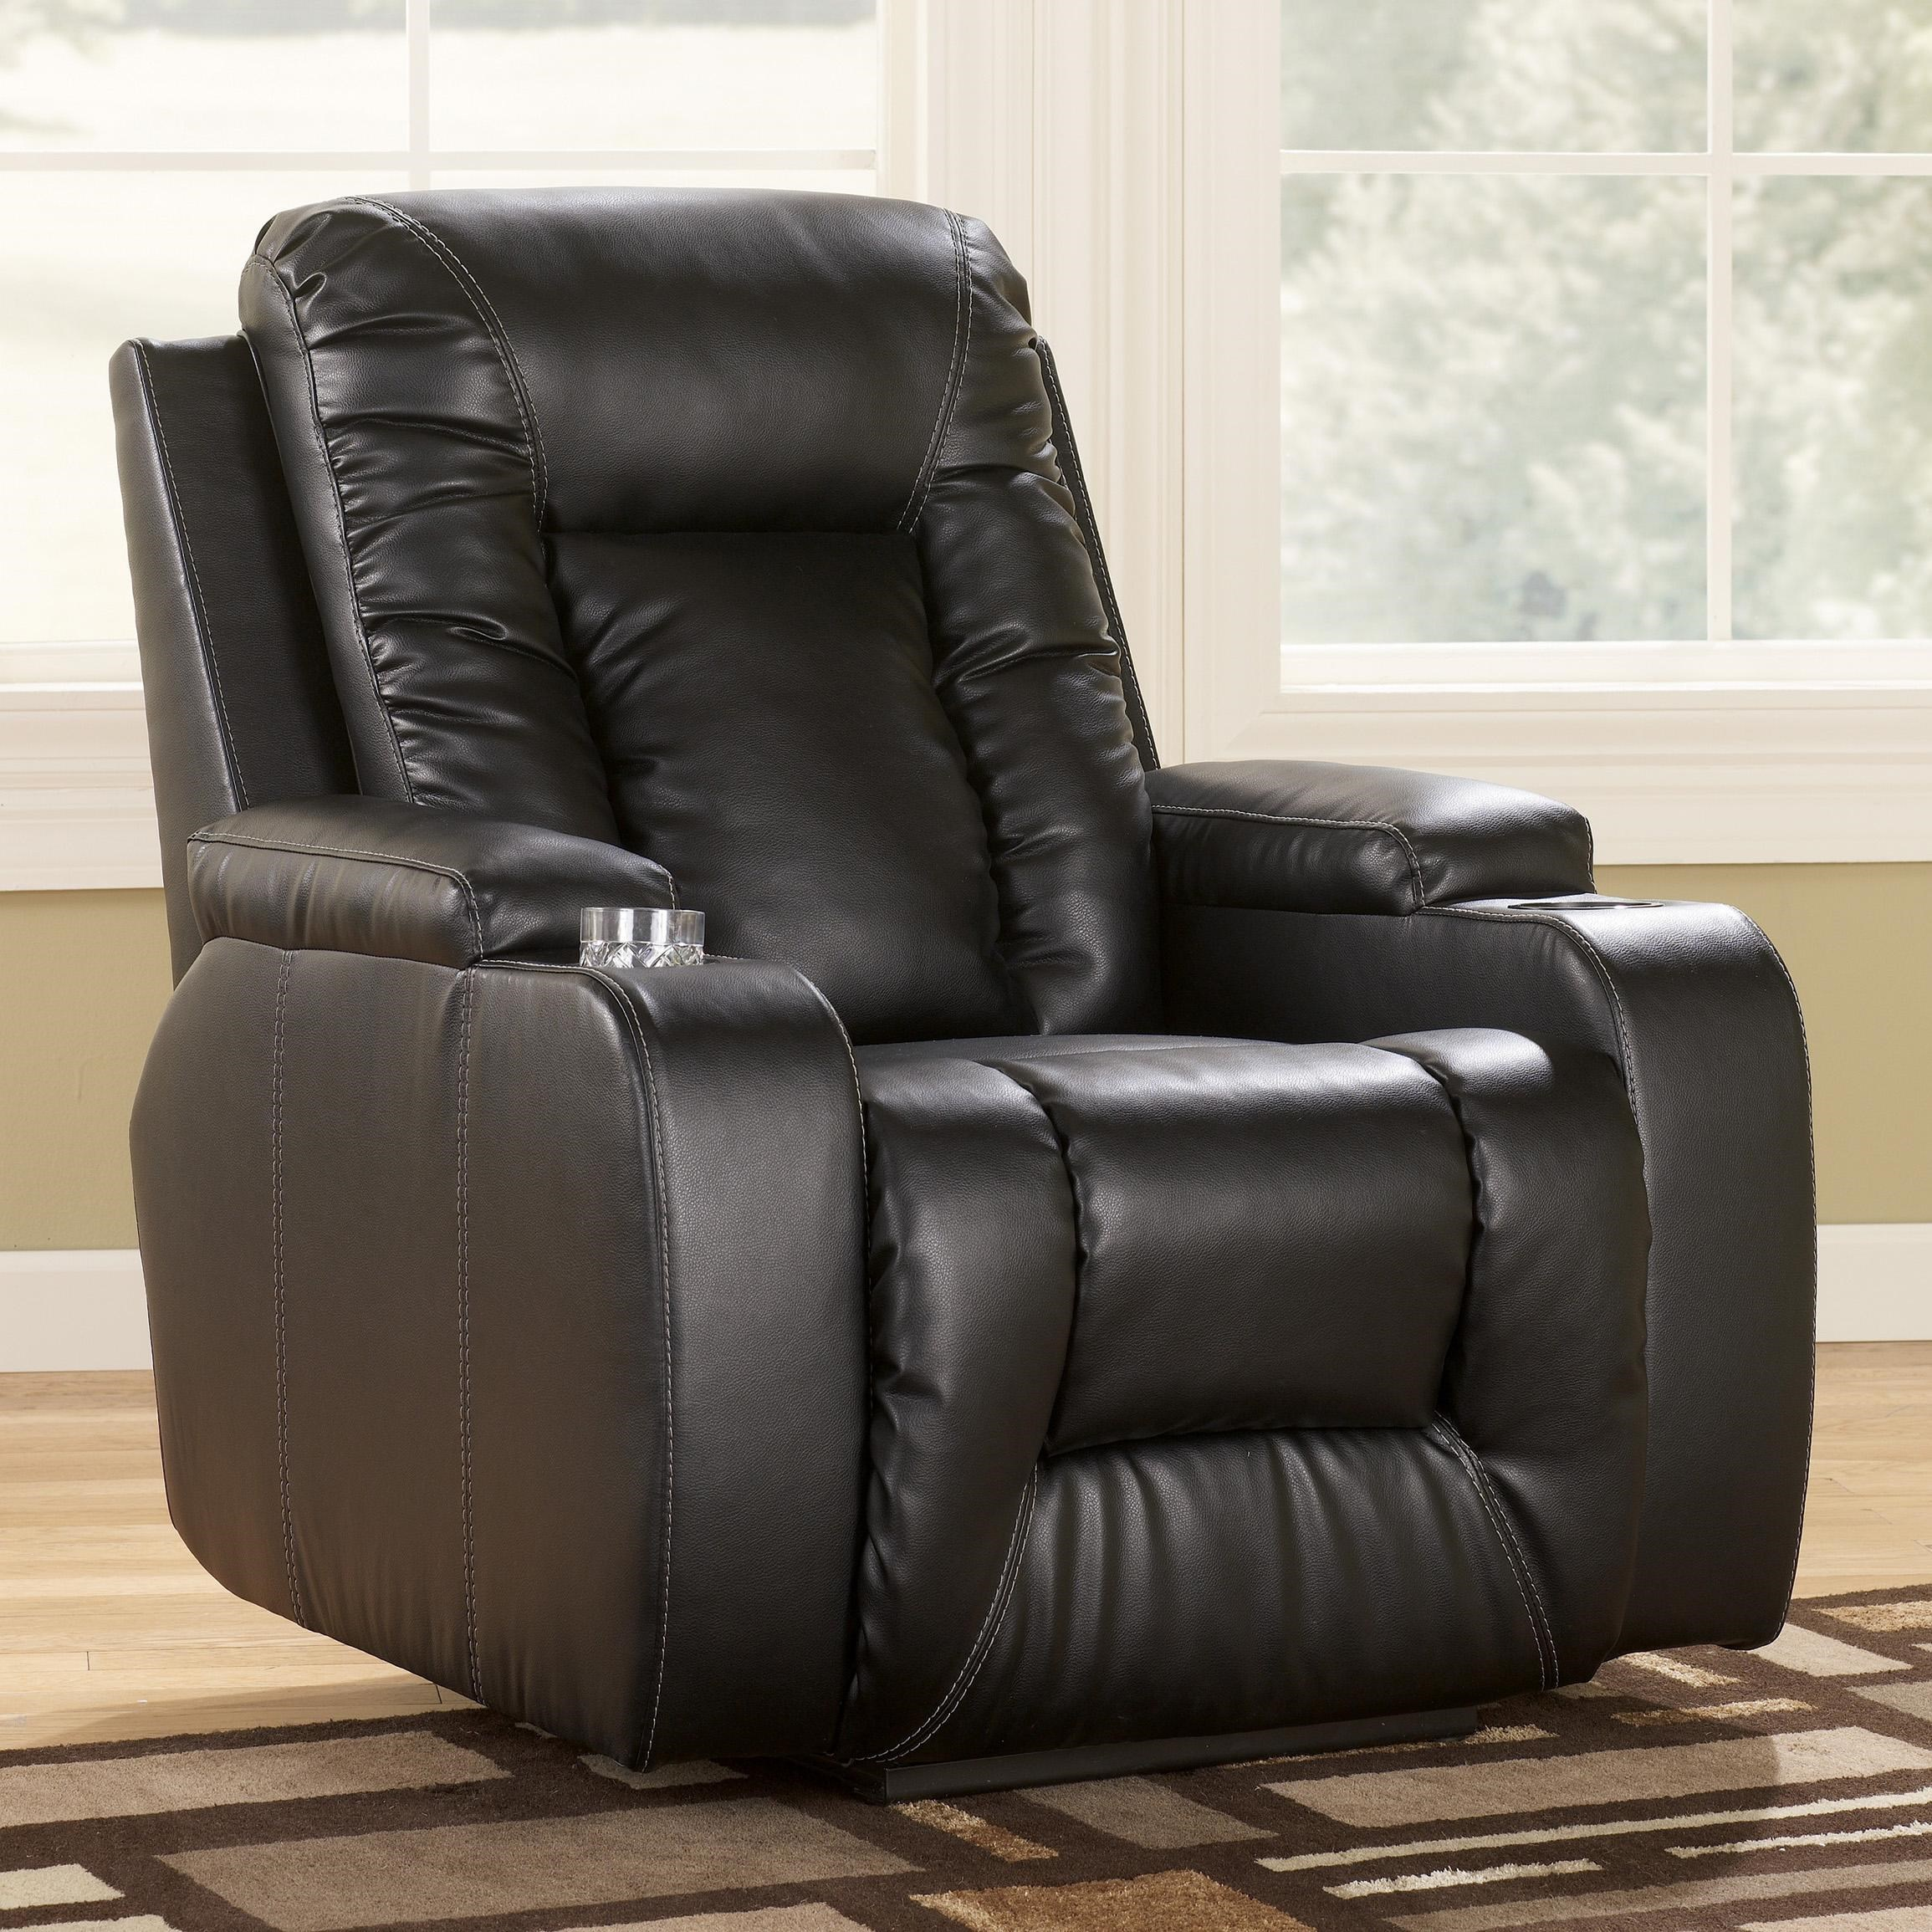 Signature Design by Ashley Matinee DuraBlend® - Eclipse Contemporary Recliner with Power & Signature Design by Ashley Matinee DuraBlend® - Eclipse ... islam-shia.org